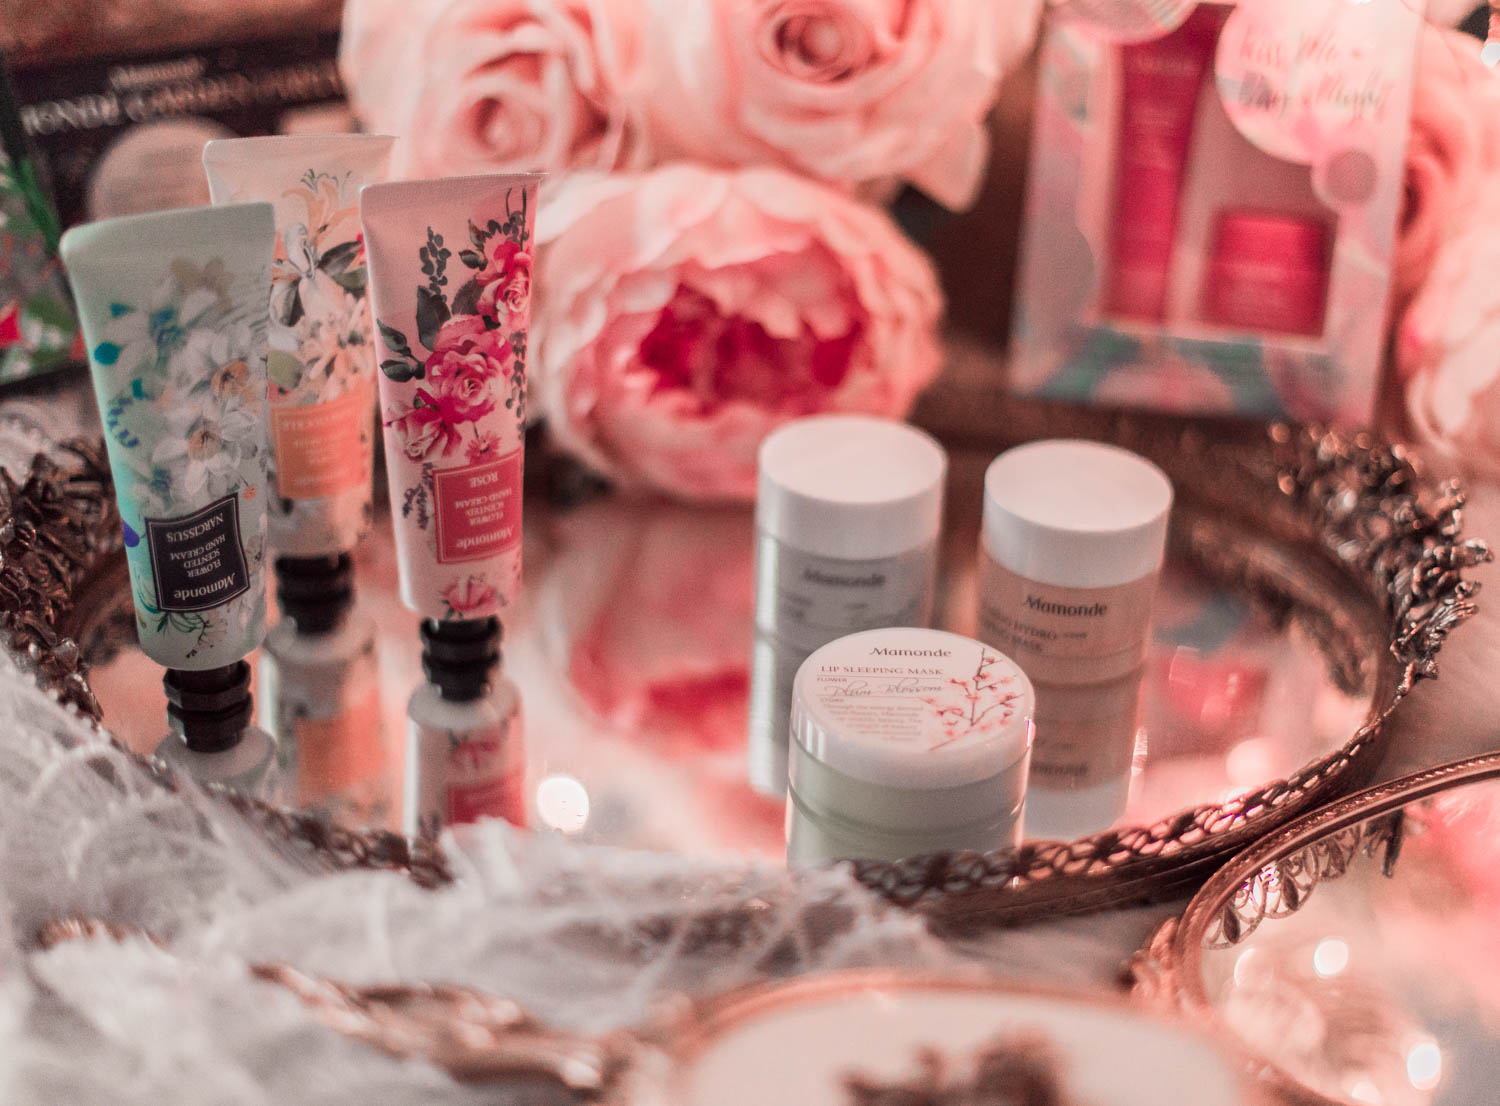 Elizabeth Hugen of Lizzie in Lace shares Mamonde holiday gift sets